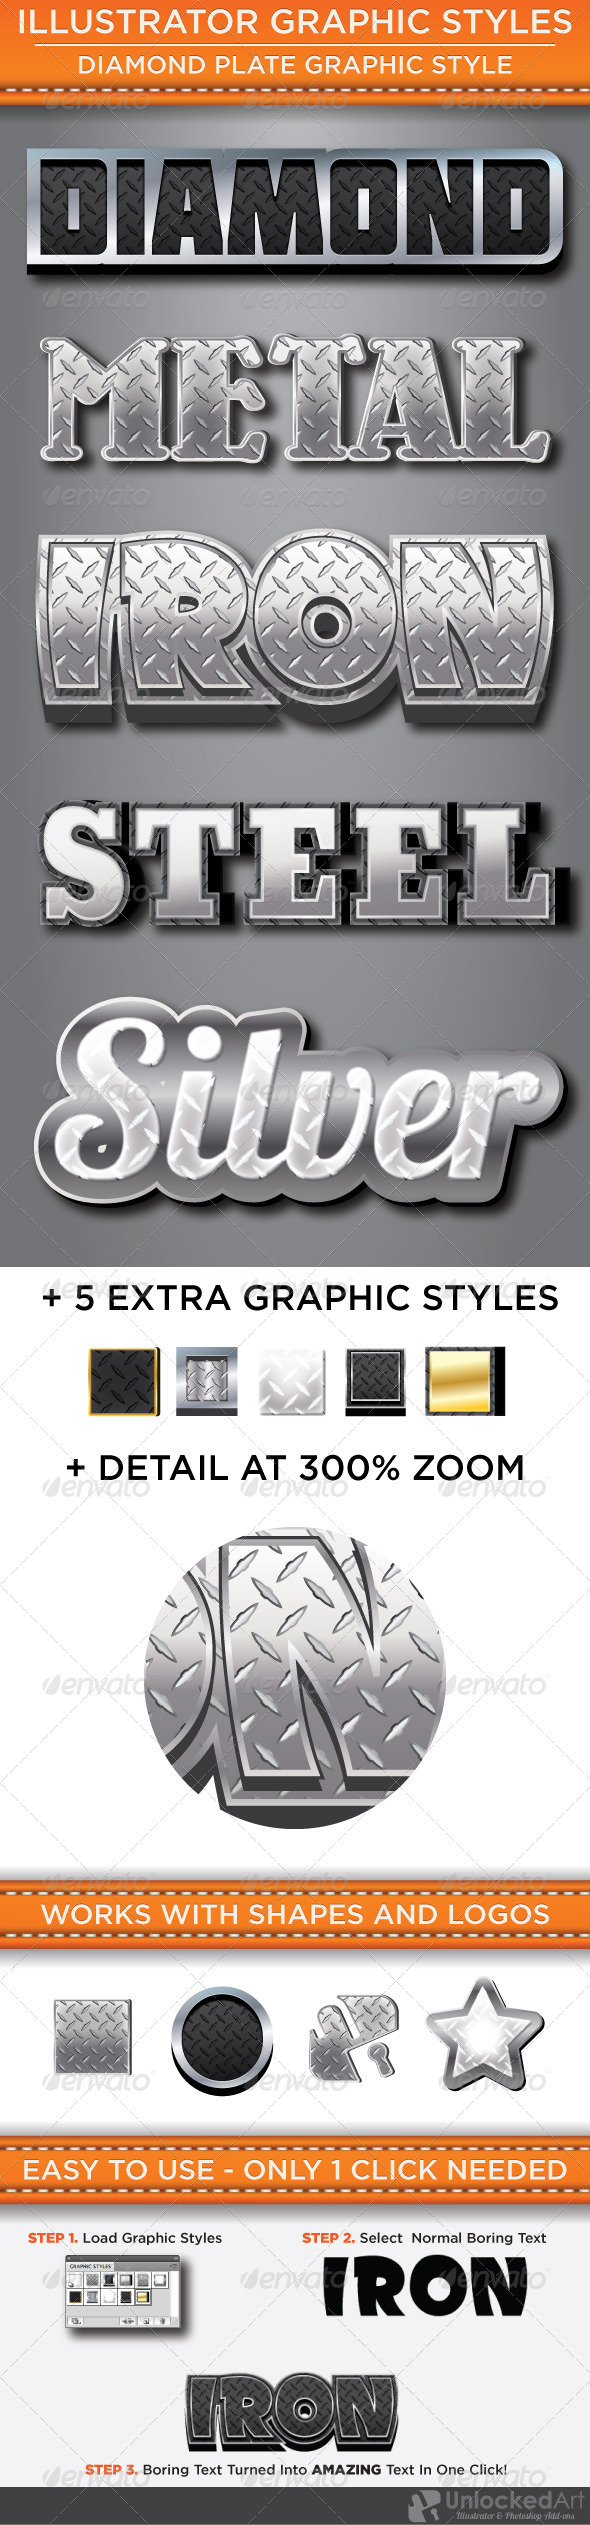 Diamond Plate Graphic Styles | GraphicRiver